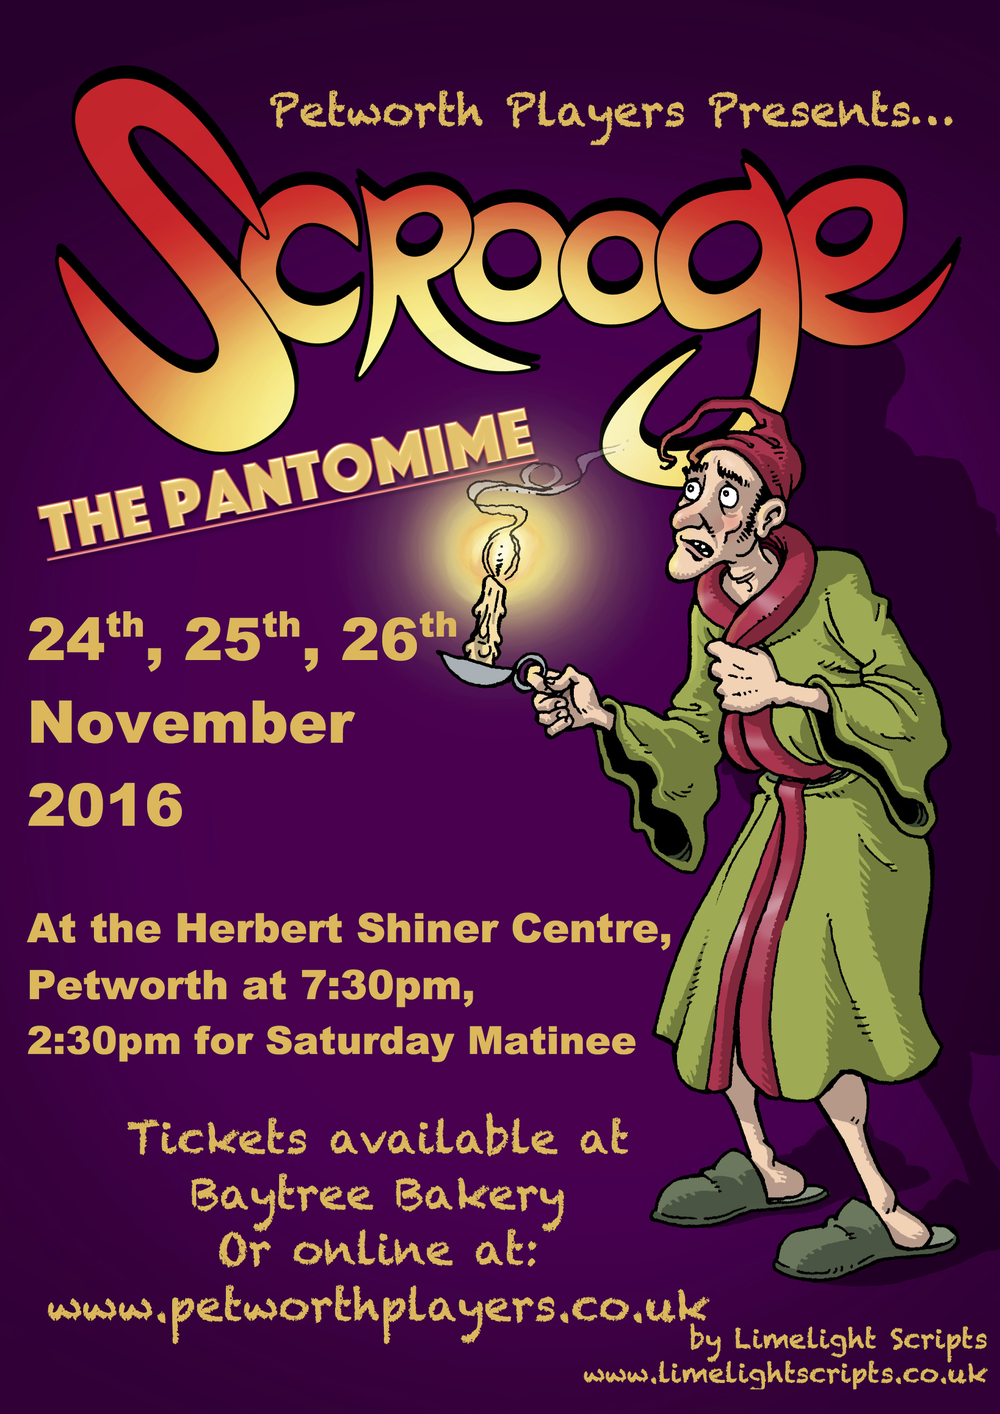 Scrooge The Pantomime - Petworth Players